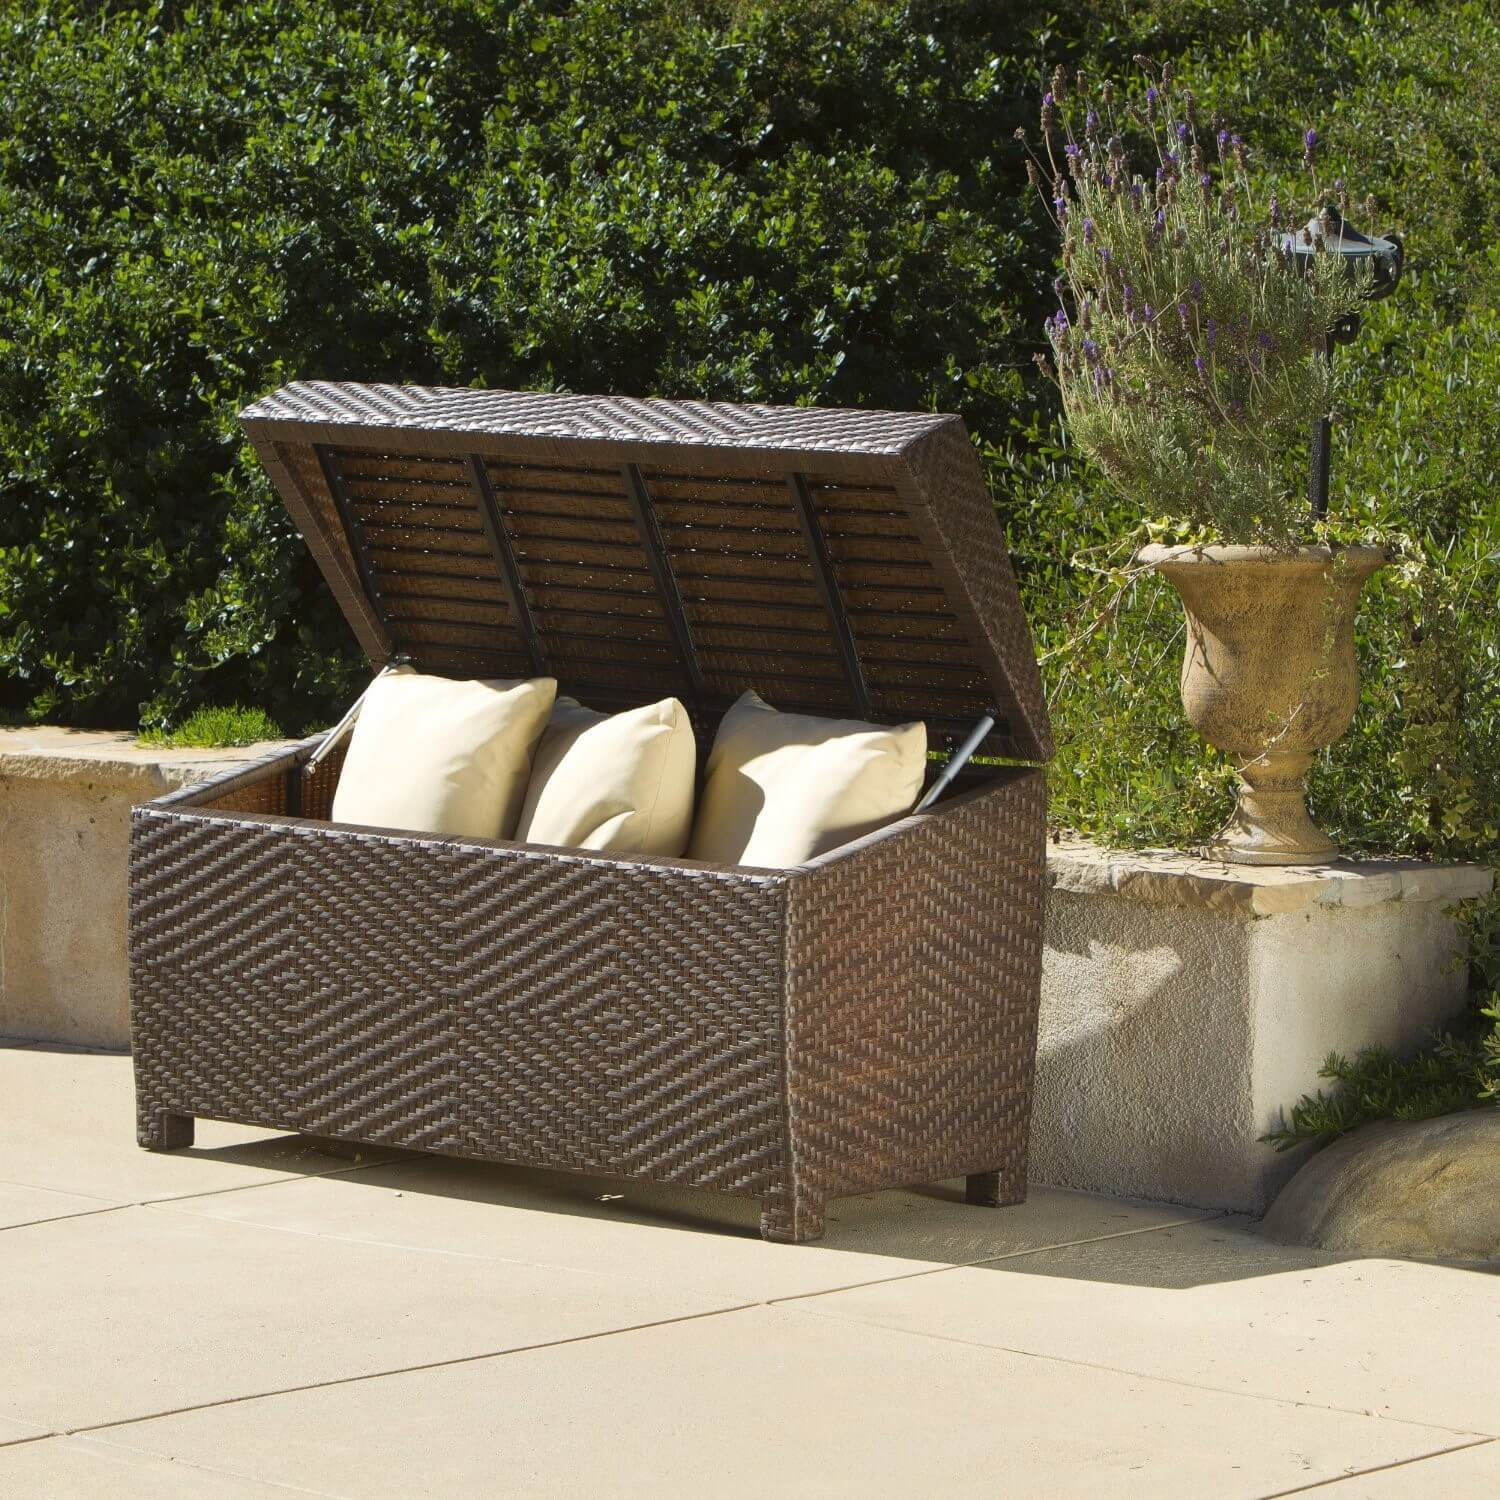 Sturdy feet, lots of interior storage space and a diamond patterned weave make this ottoman bin a great choice for dining sets and outdoor living rooms.